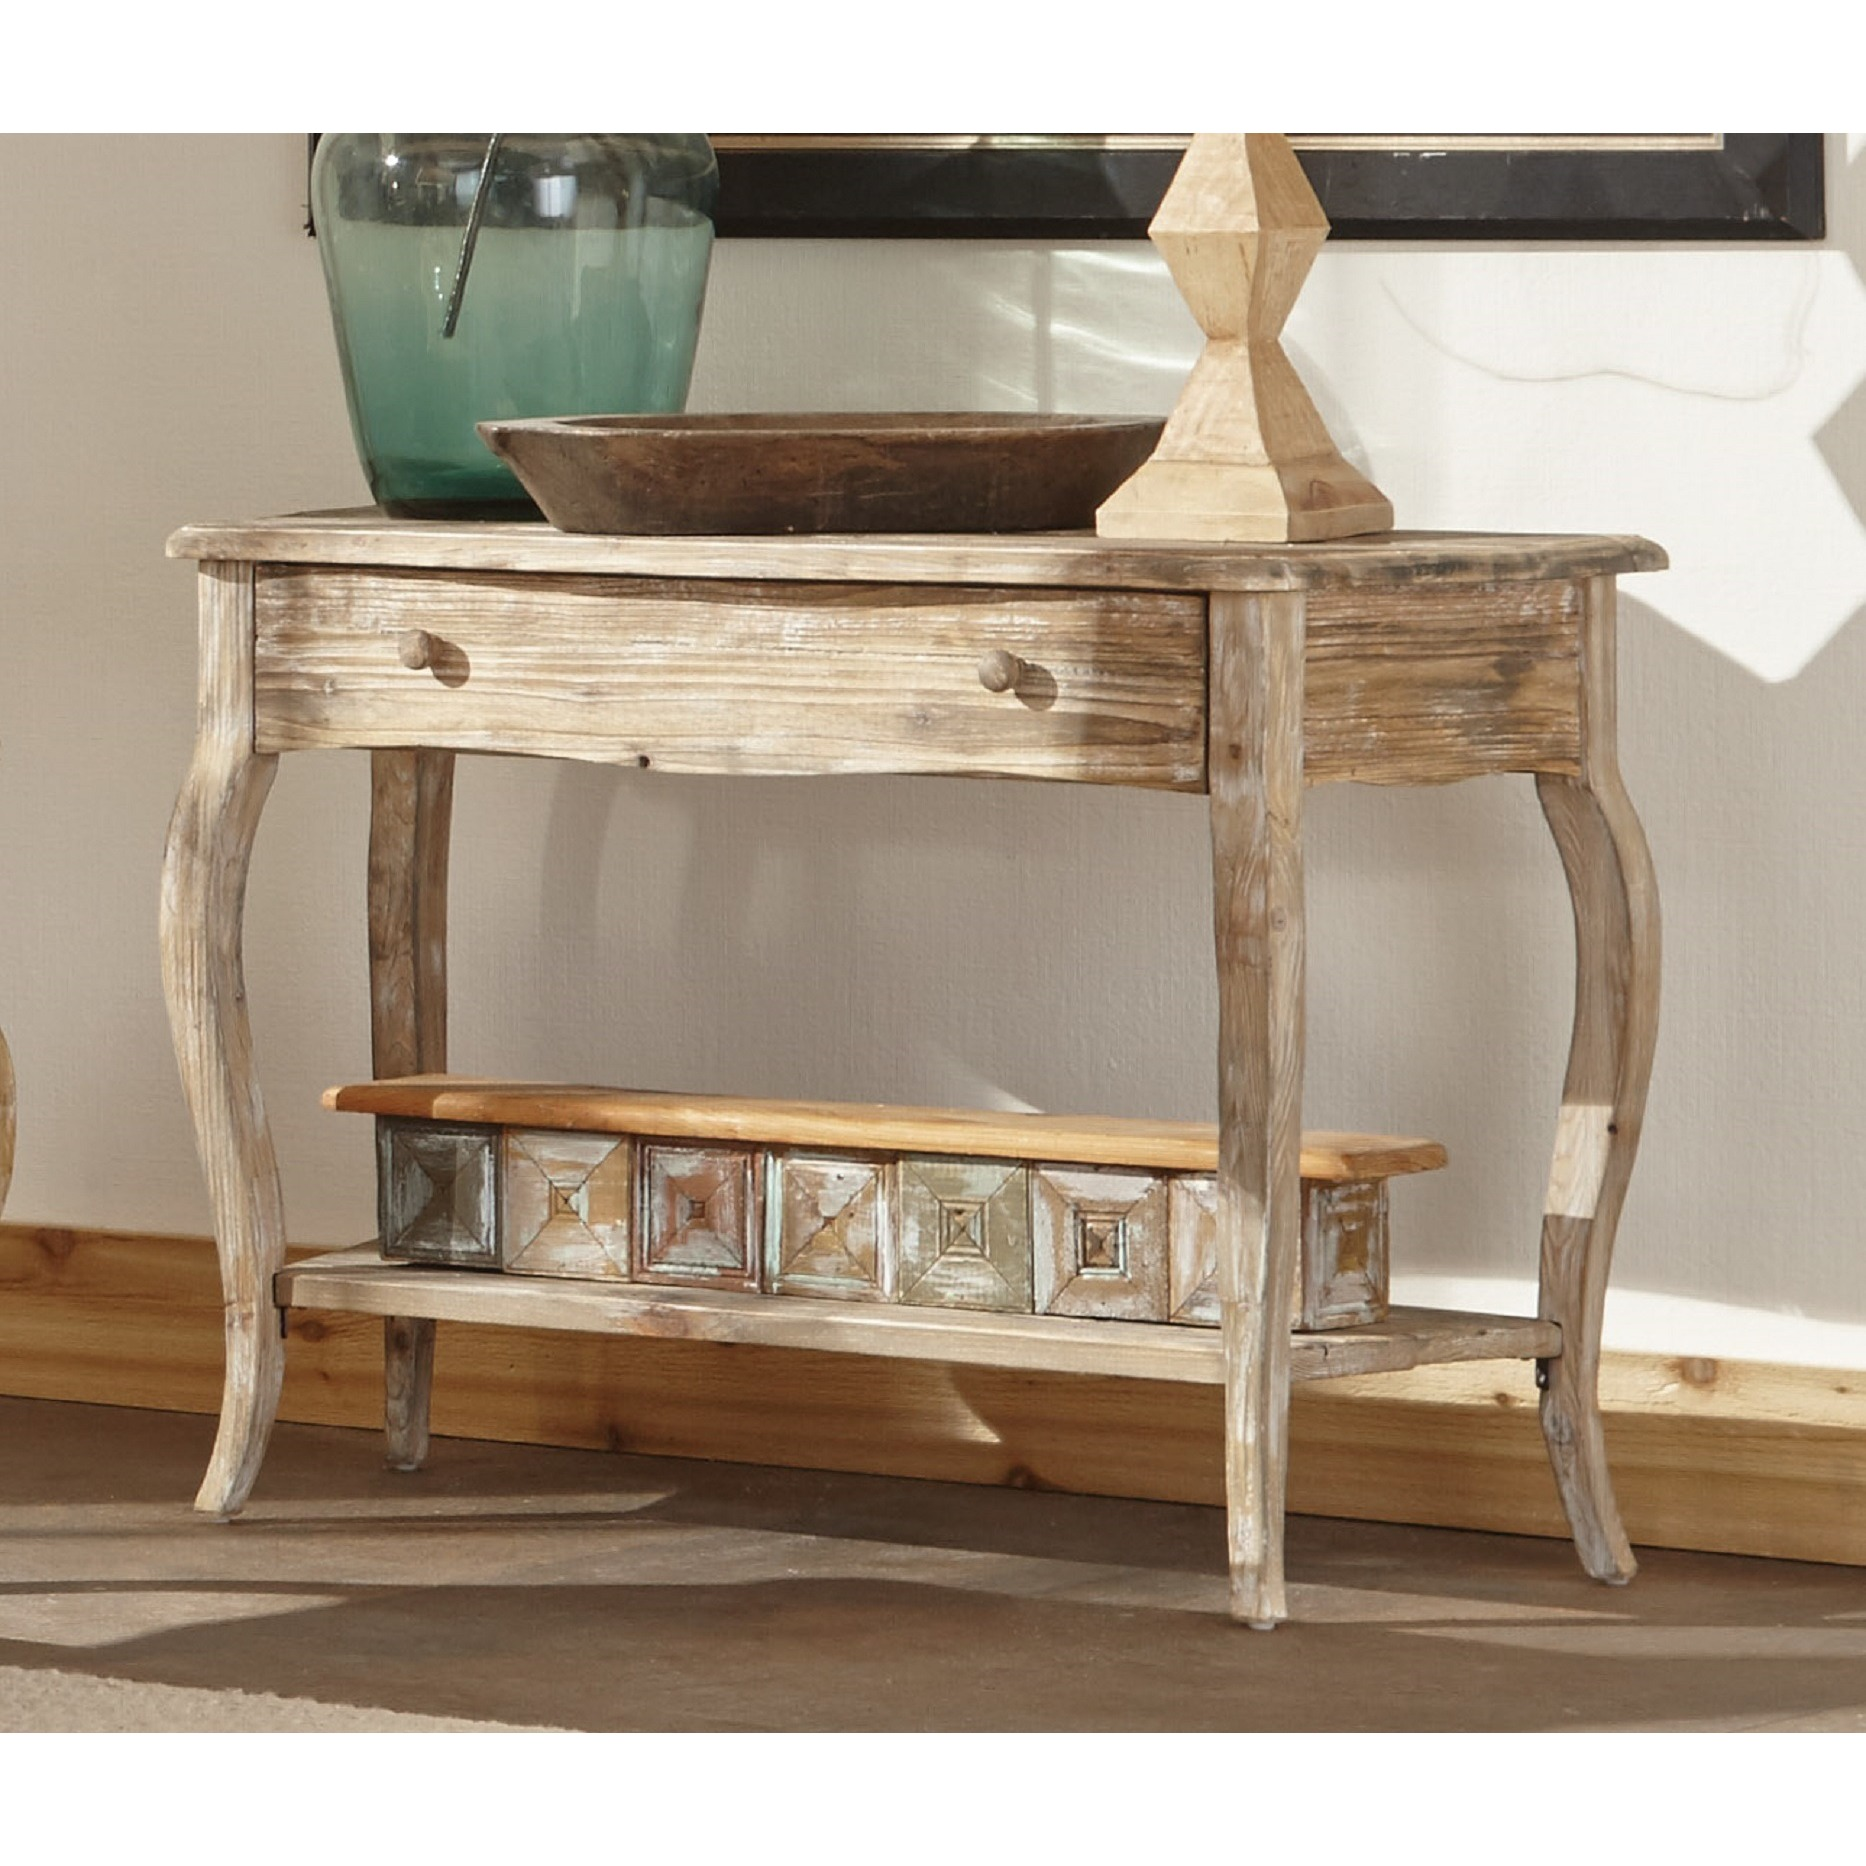 weathered oak square coffee table rustic log end tables distressed wood accent barnwood crate and barrel teton full size outdoor dining very small lamps runners next bedside